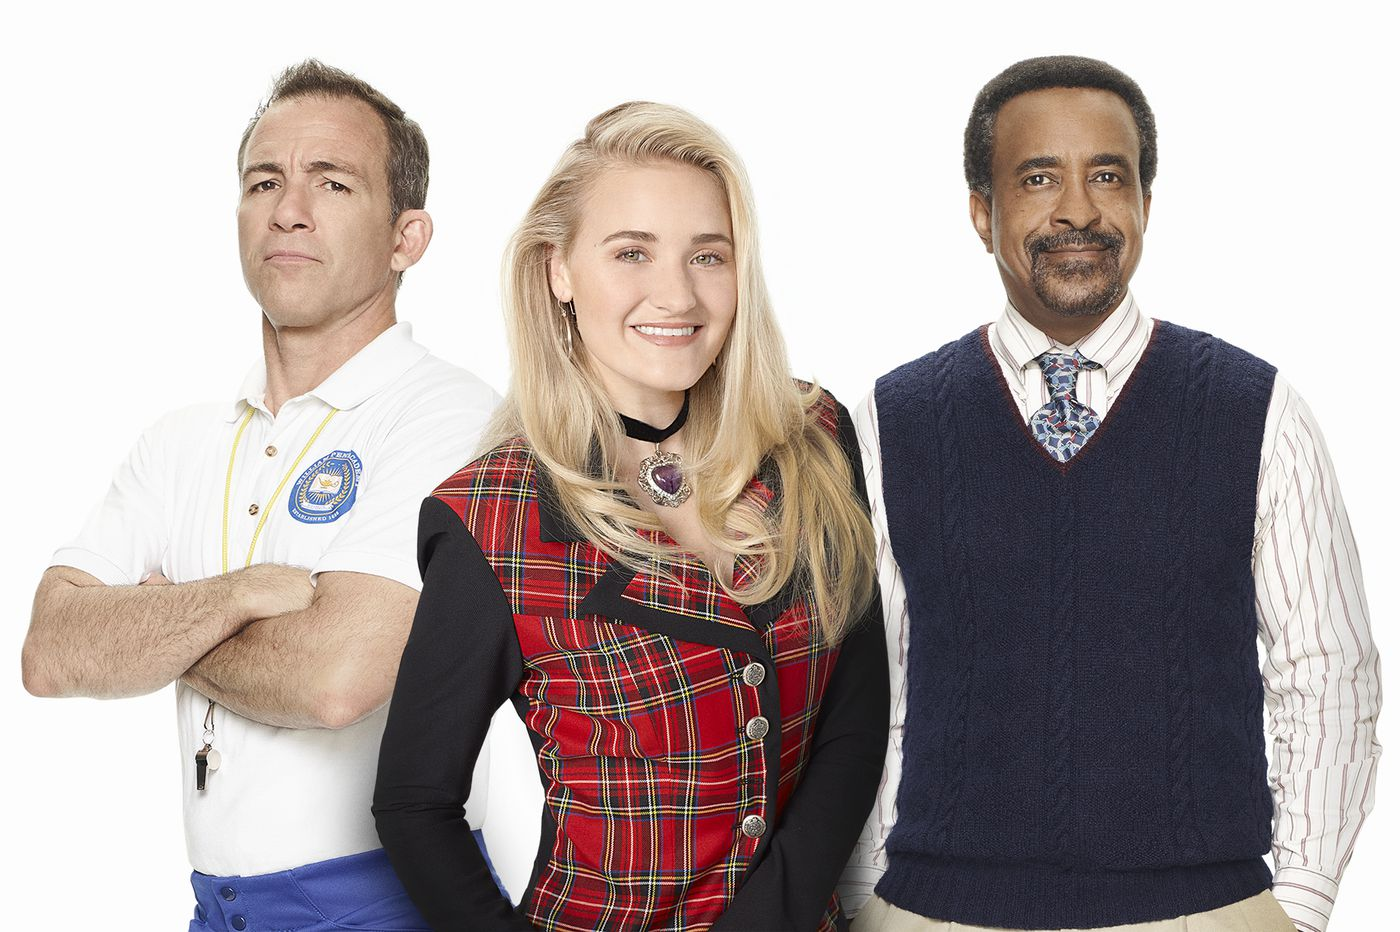 'The Goldbergs' spinoff 'Schooled' gets premiere date on ABC